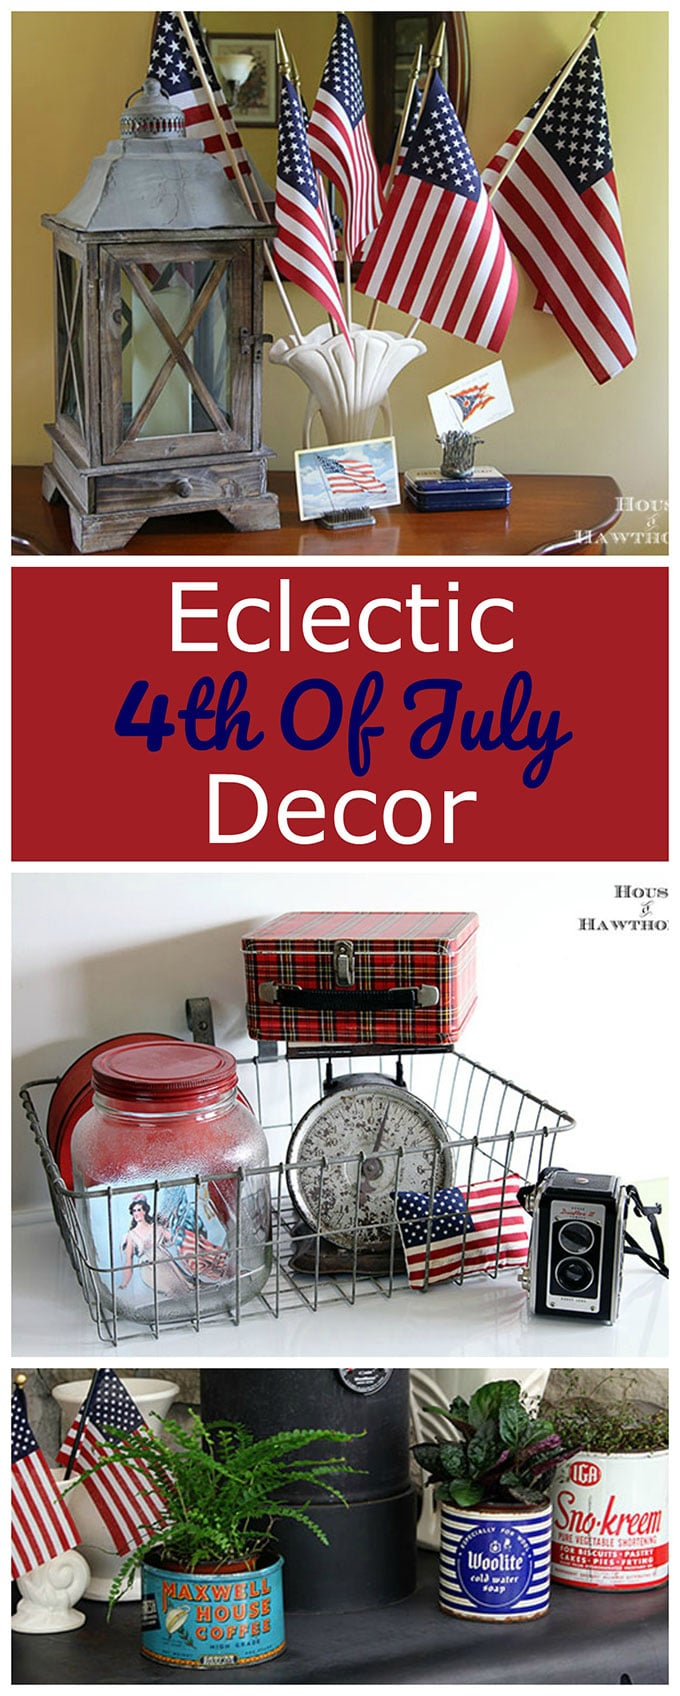 An eclectic 4th of July home tour with lots of vintage patriotic home decor.